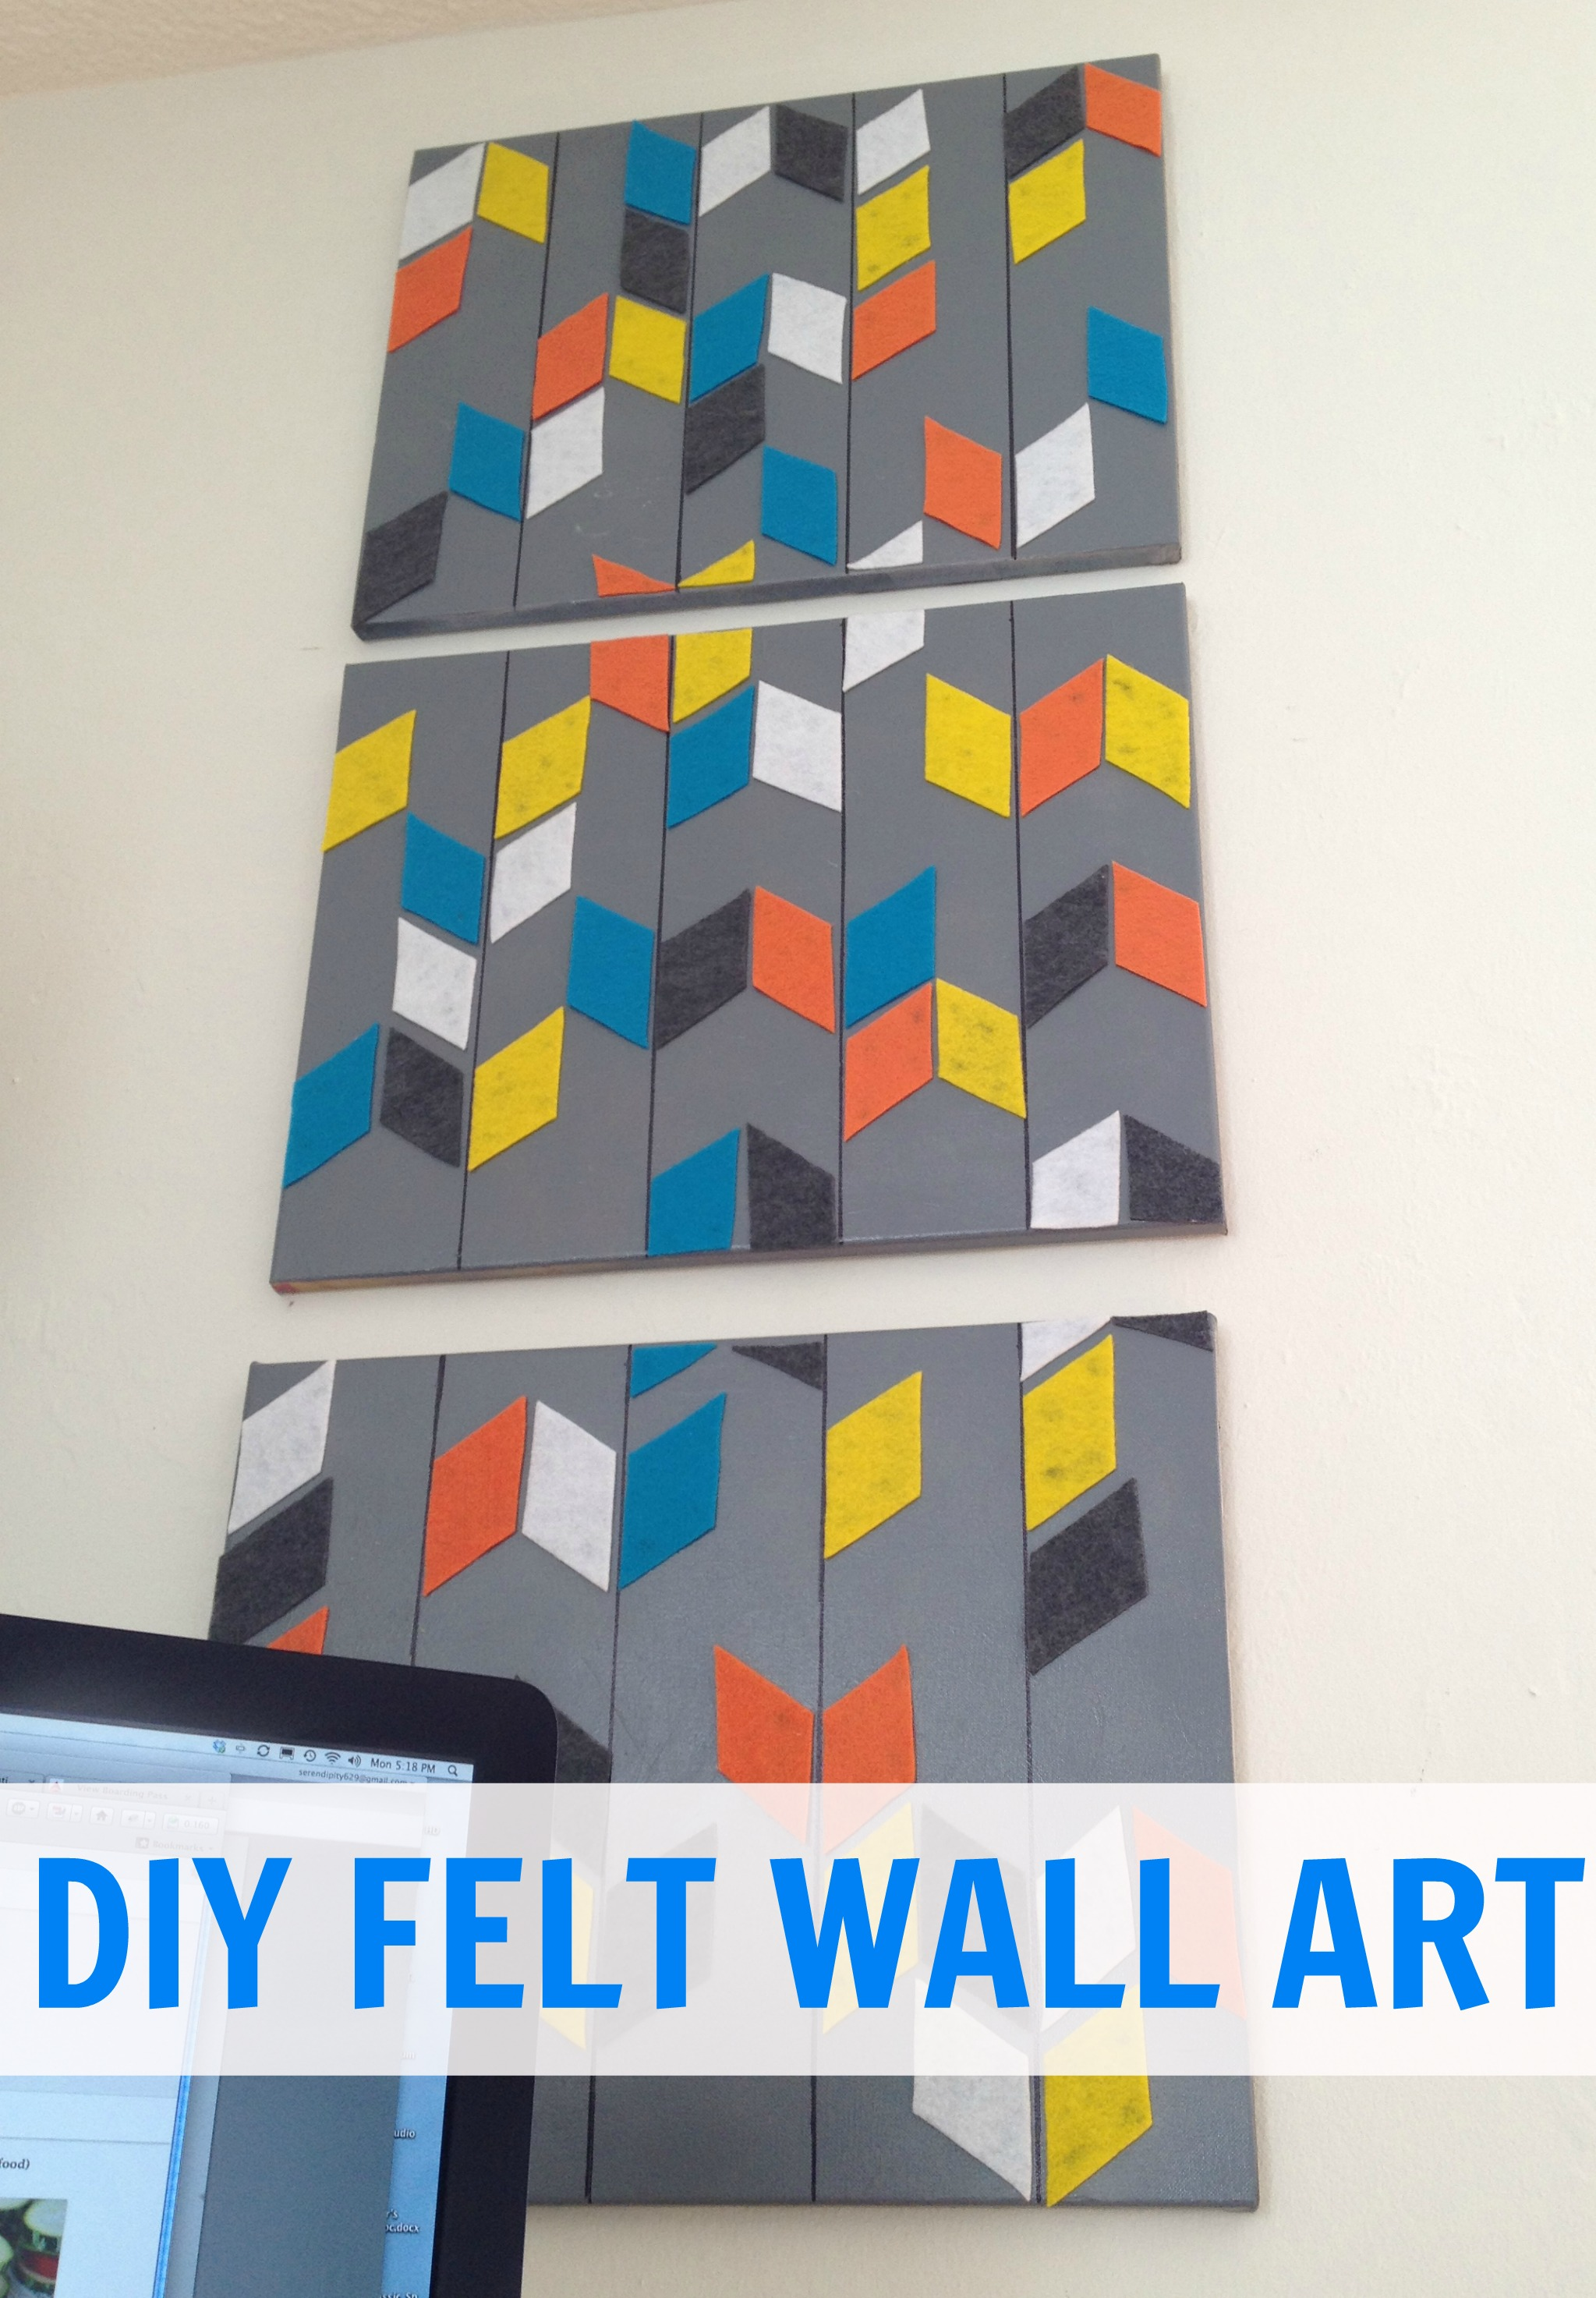 diy wall art : art for apartment walls - www.pureclipart.com